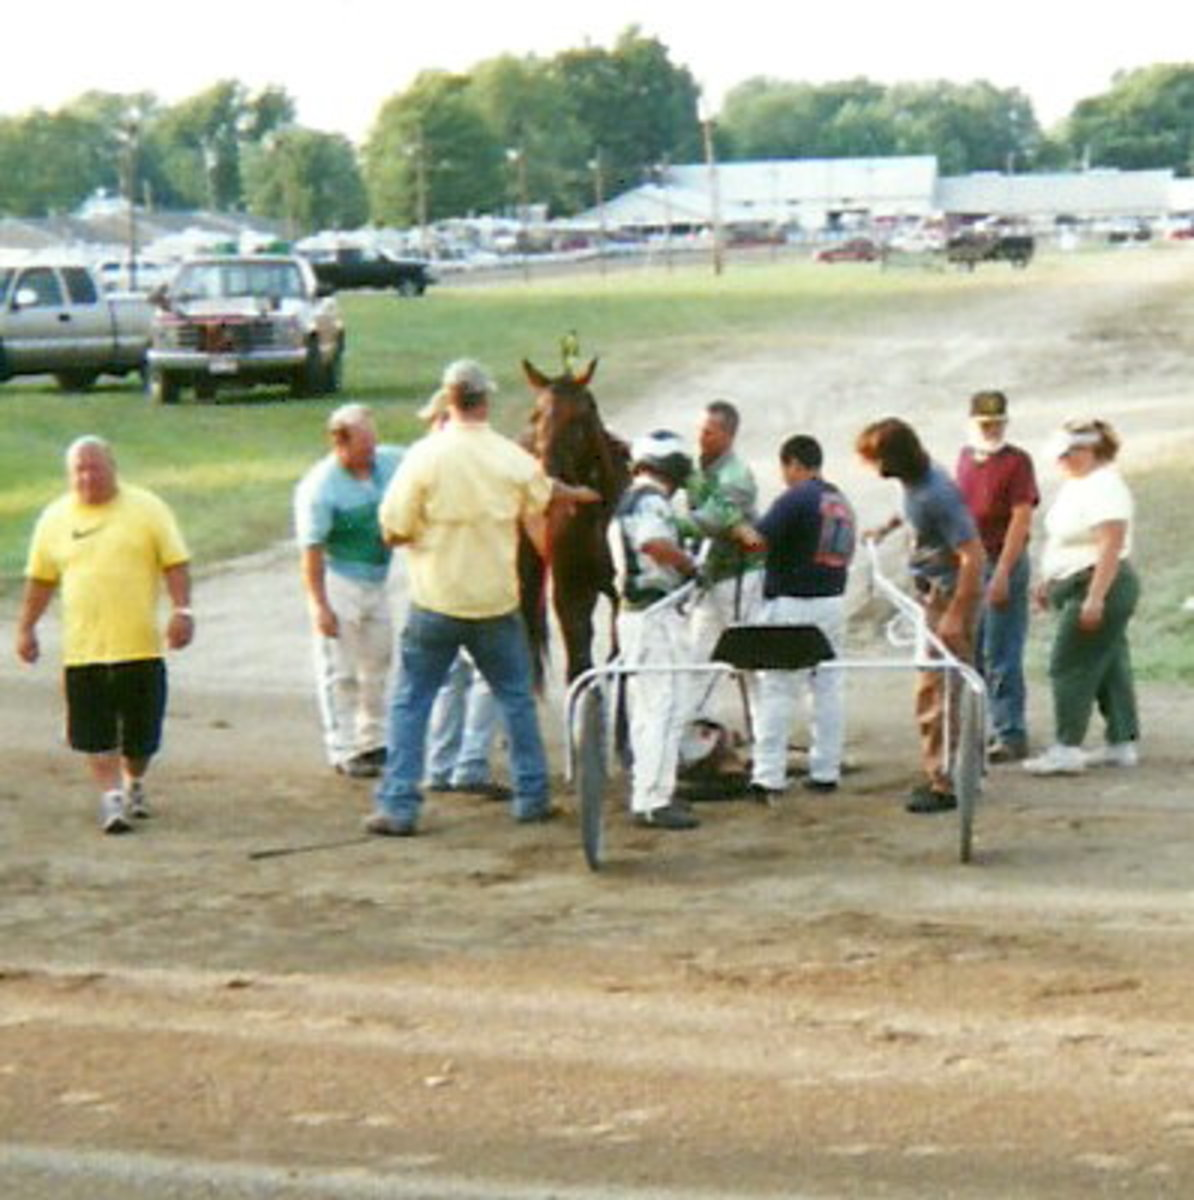 Fellow horsemen, handlers, and owners rushed to the track to assist in untangling reins and equipment and righting the frightened filly, who appeared unhurt.